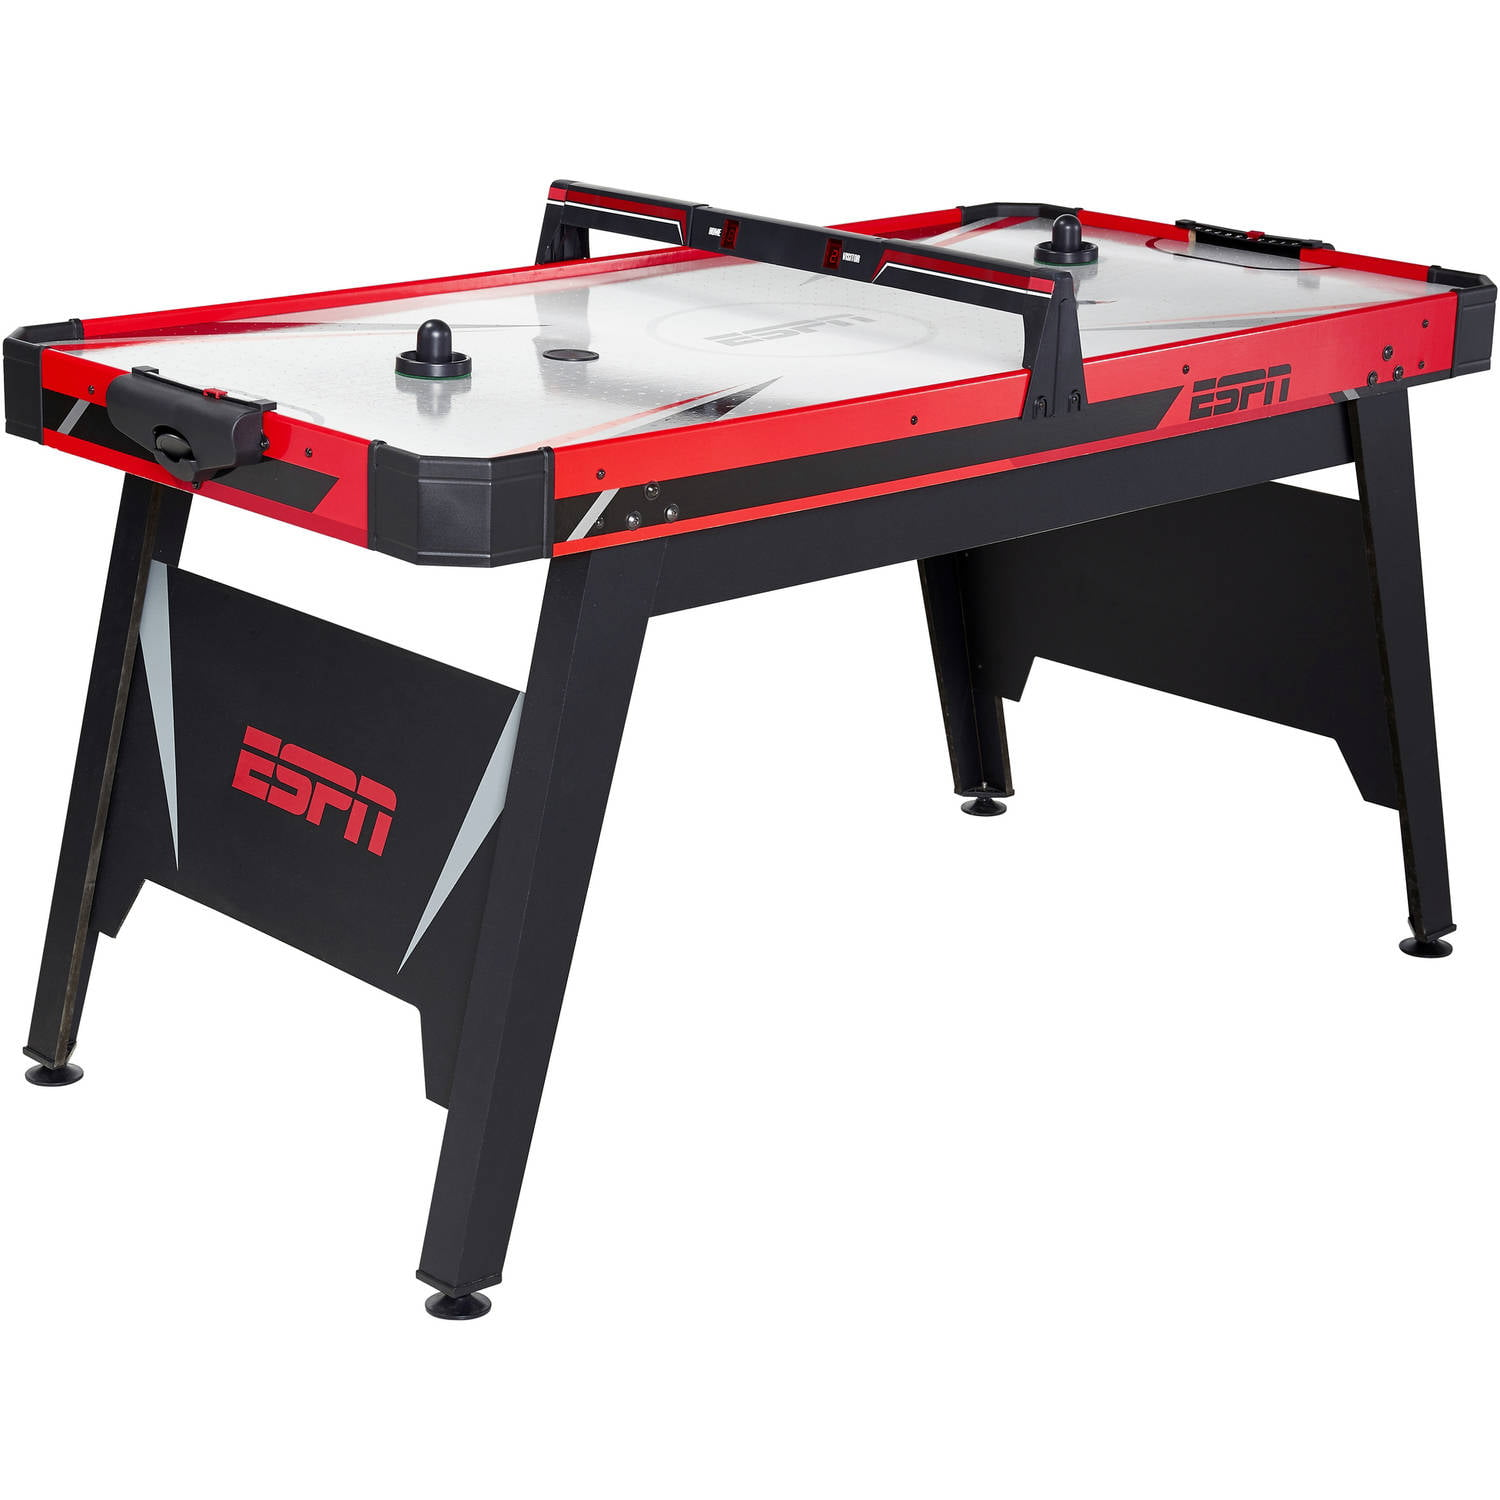 ESPN 60 Inch Air Powered Hockey Table With Overhead Electronic Scorer,  Includes 2 Pushers And 2 Pucks, Black/Red   Walmart.com